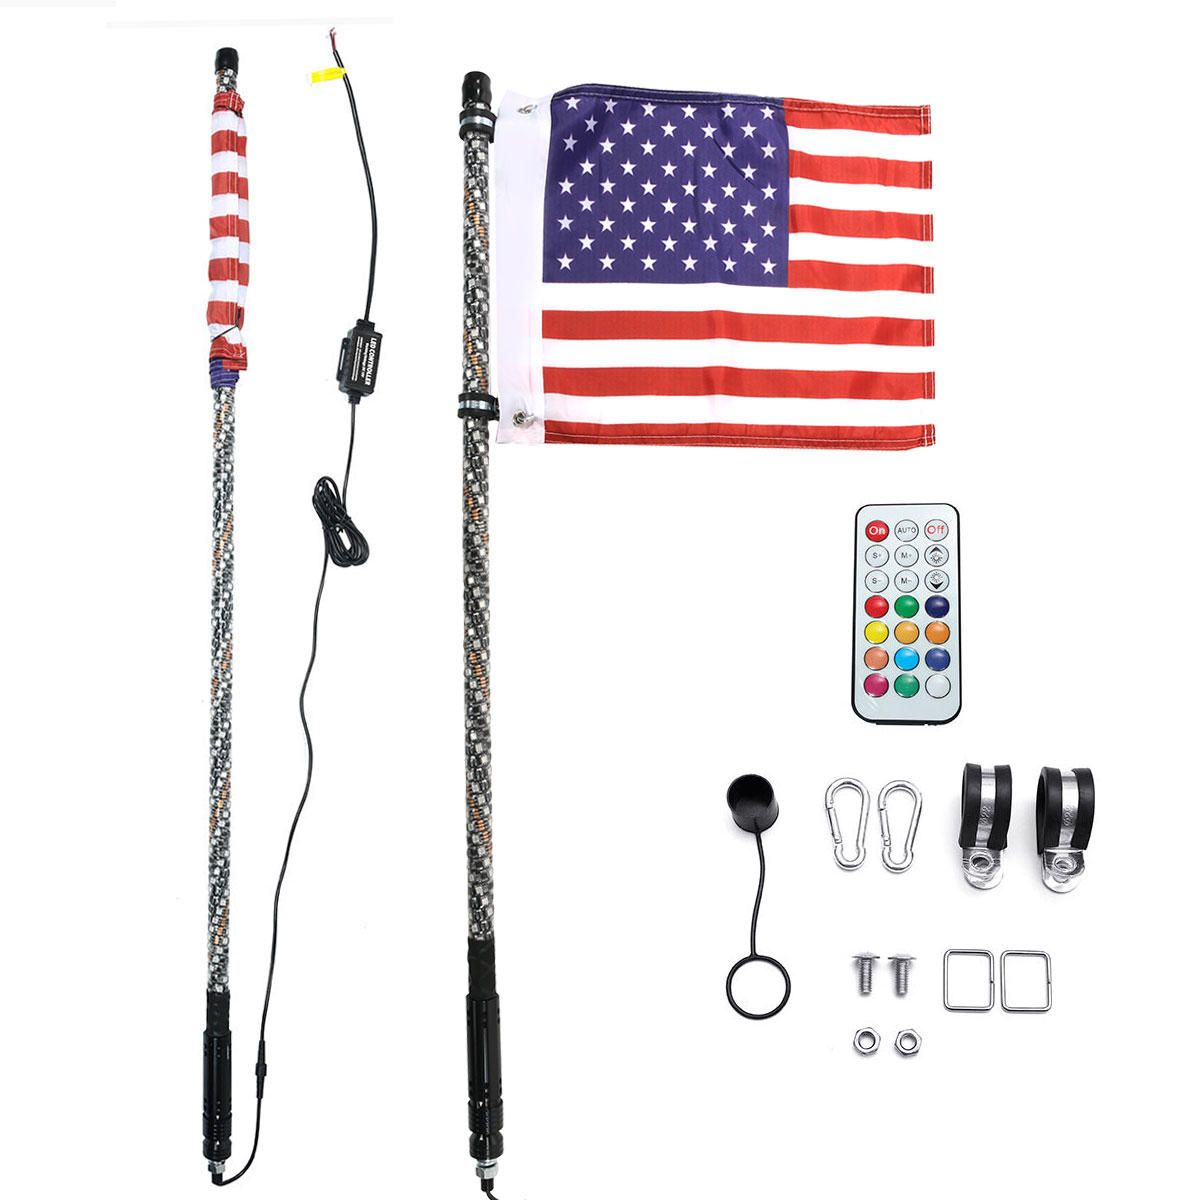 GDE US$96.99~111.99 12V 3FT/4FT/5FT LED 4WD Strip RGB Color Whip America USA Flag Light With Remote Control For Jeep ATV UTV RZR Motorcycle Accessories